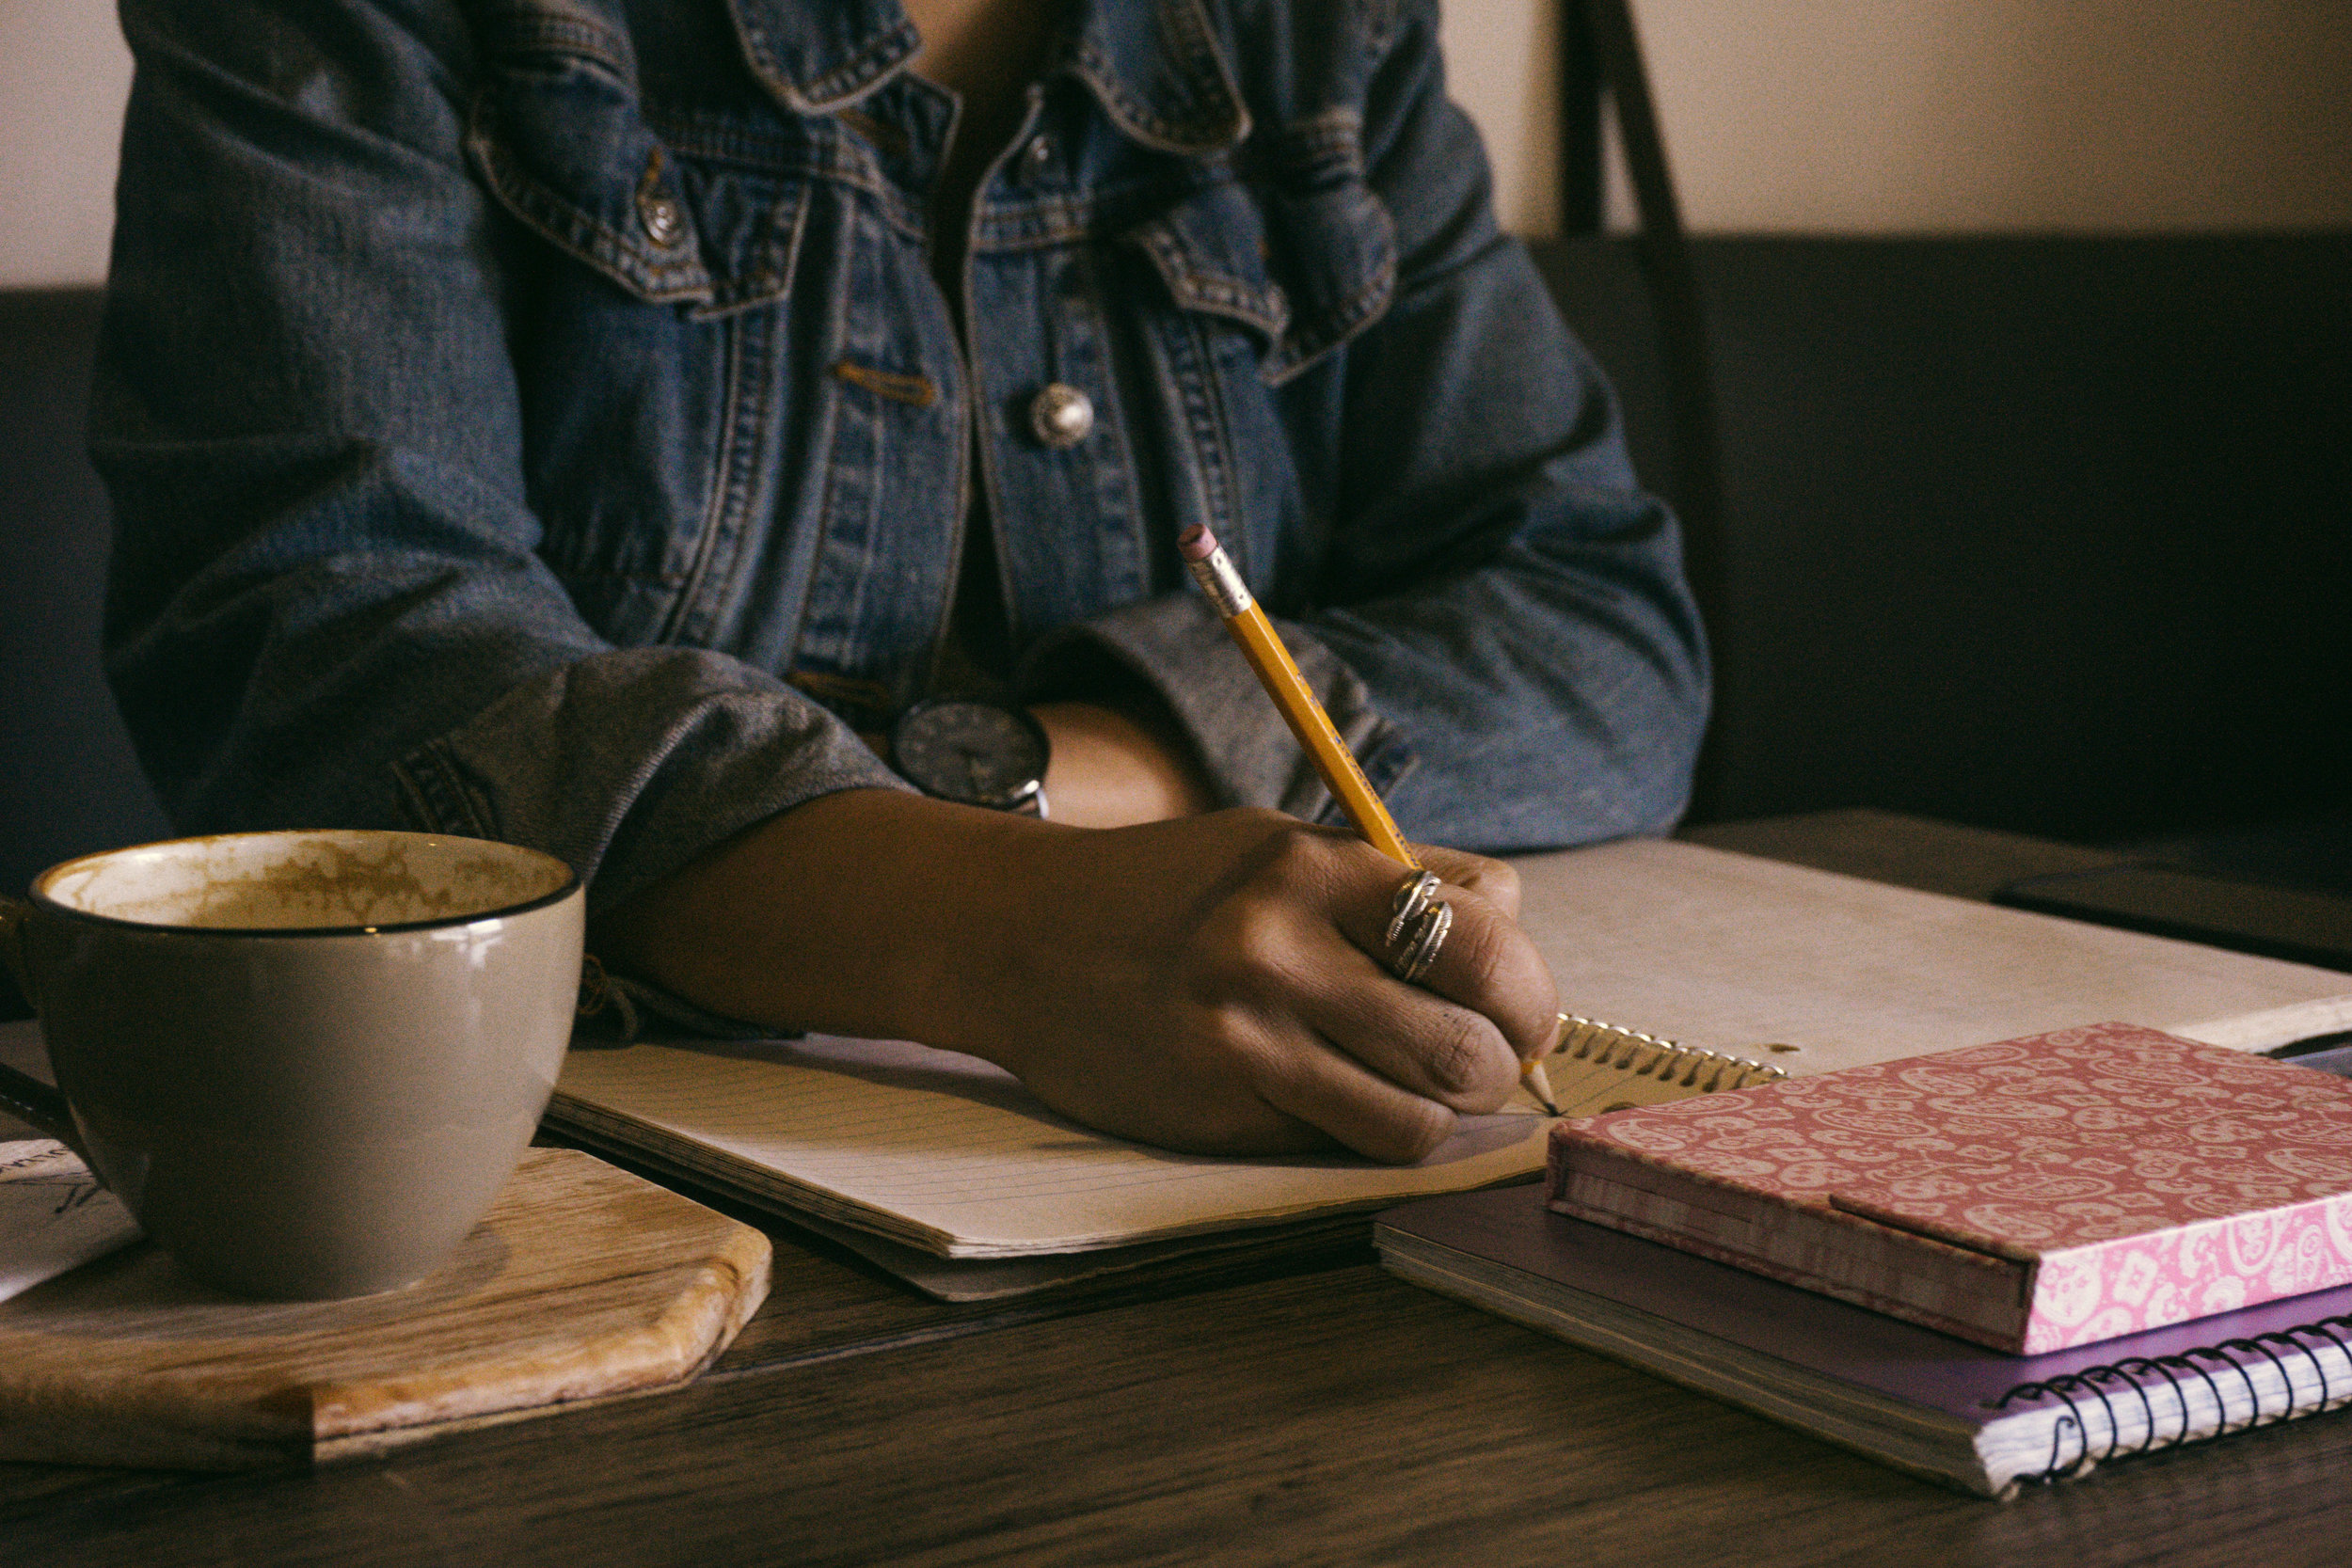 How do I write when I don't know what to write about?